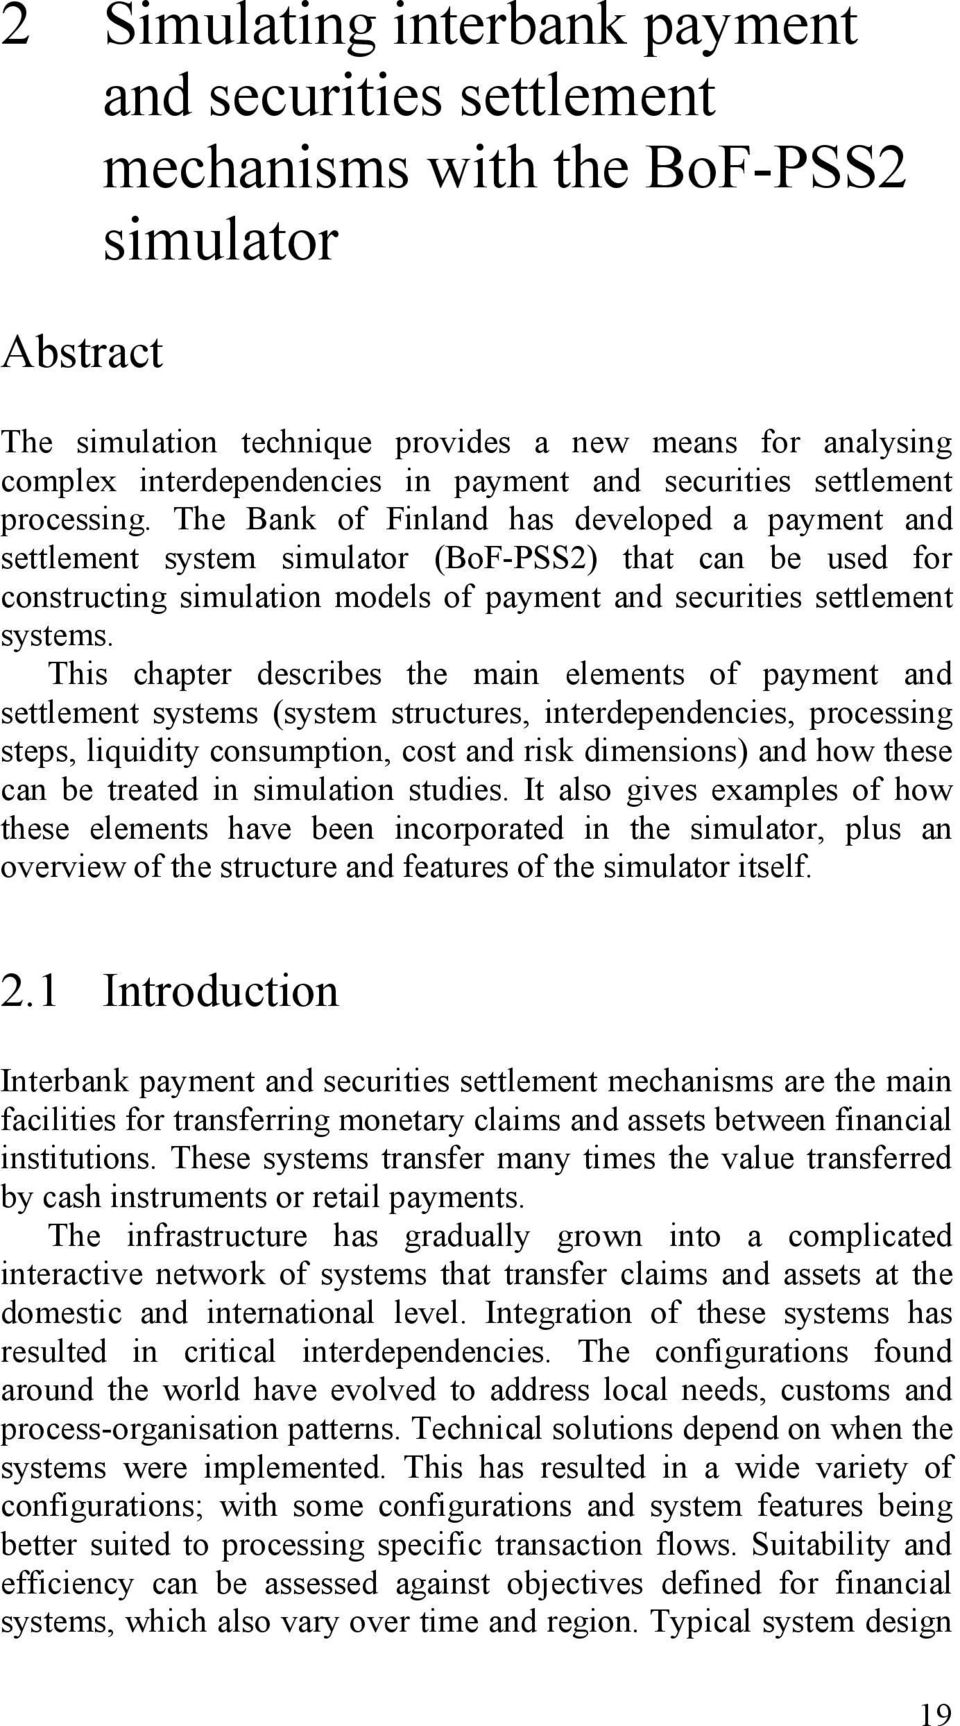 The Bank of Finland has developed a payment and settlement system simulator (BoF-PSS2) that can be used for constructing simulation models of payment and securities settlement systems.